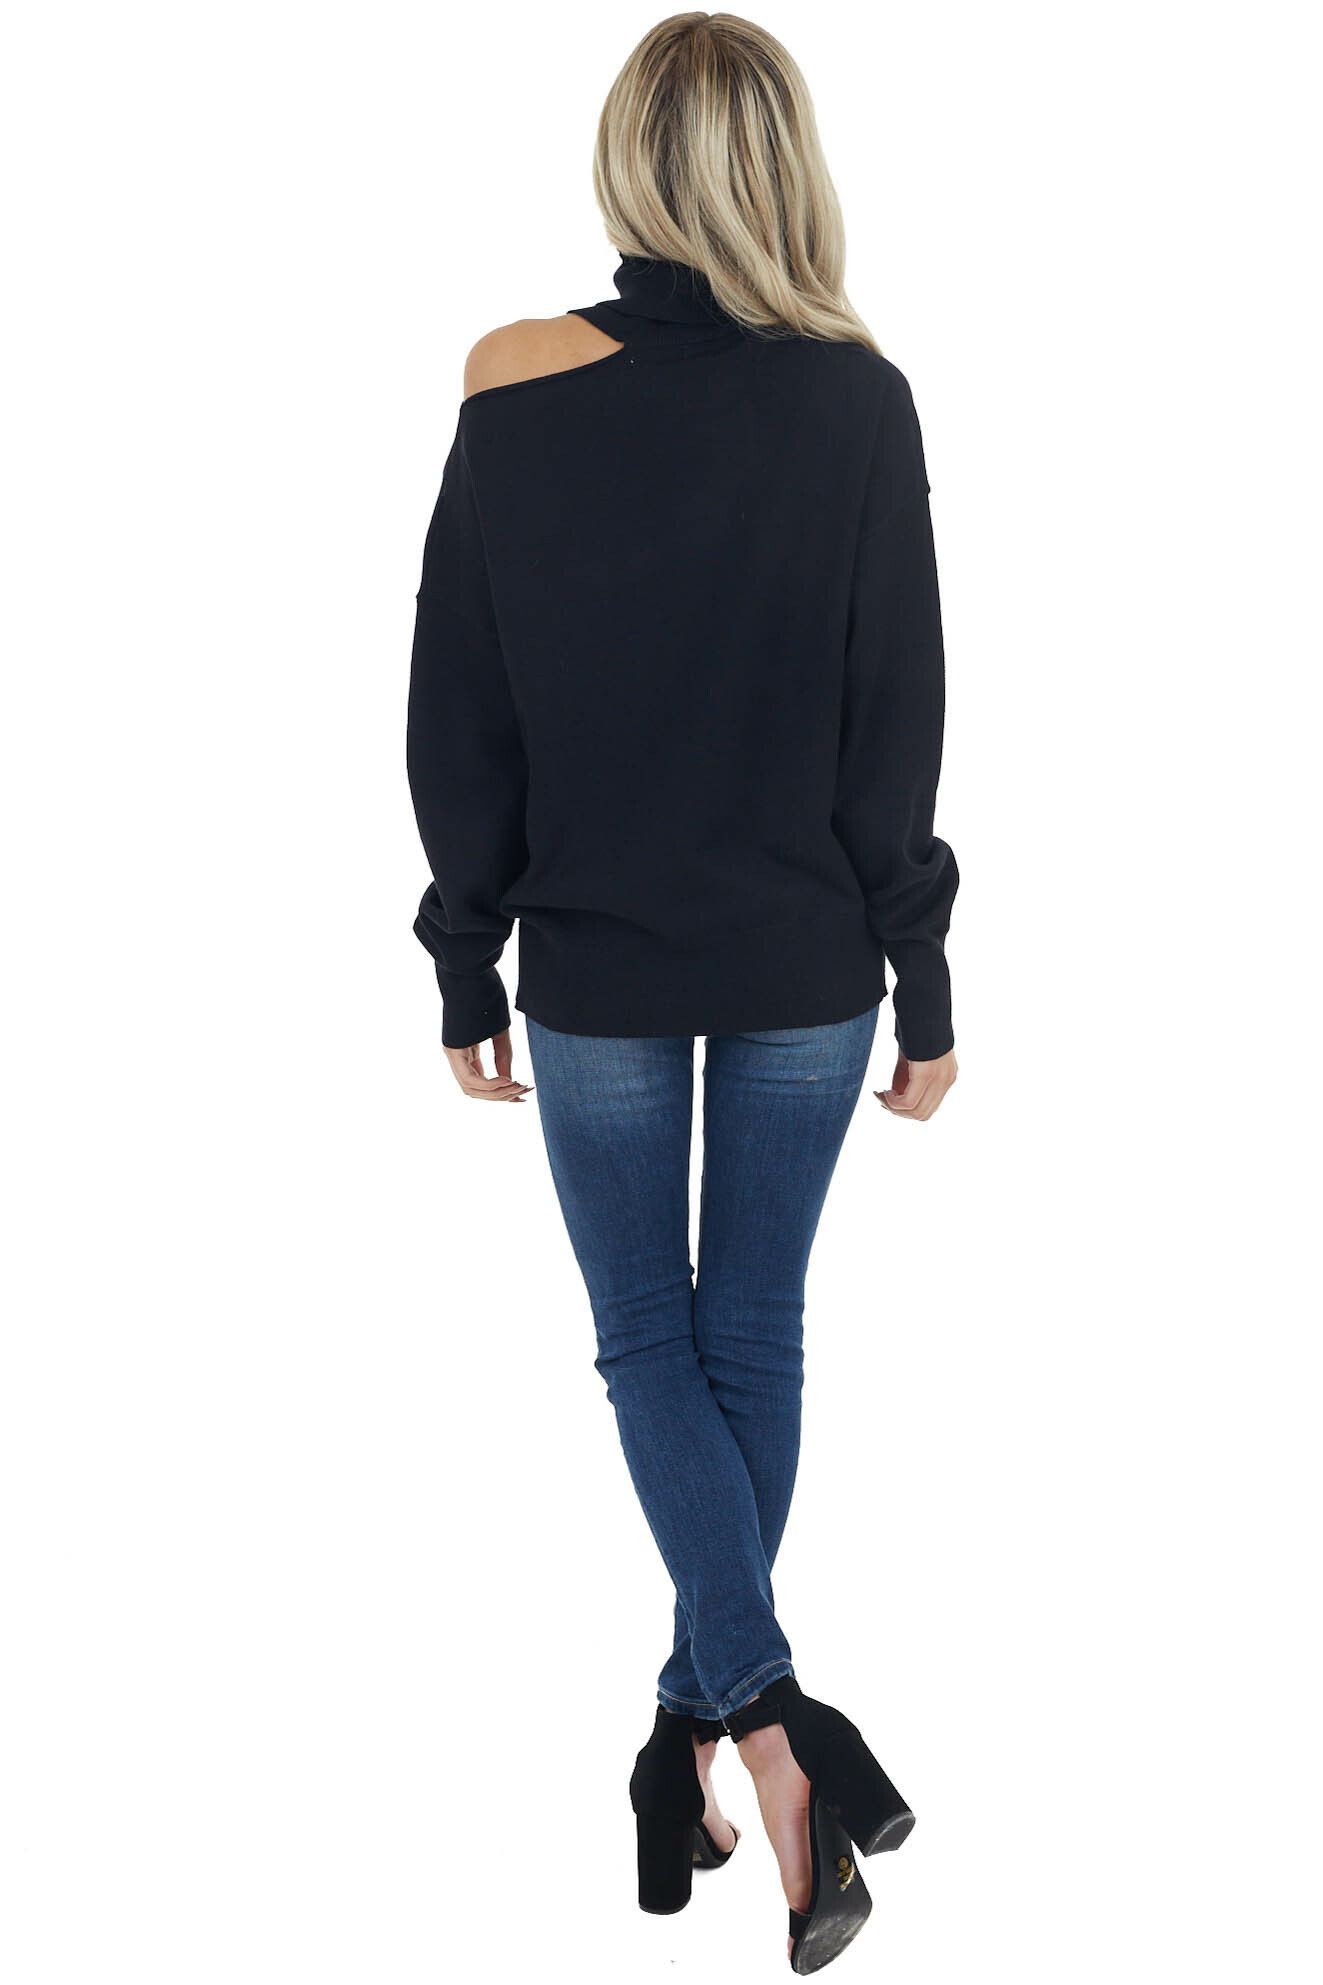 Black Turtleneck Knit Top with Single Shoulder Cutout